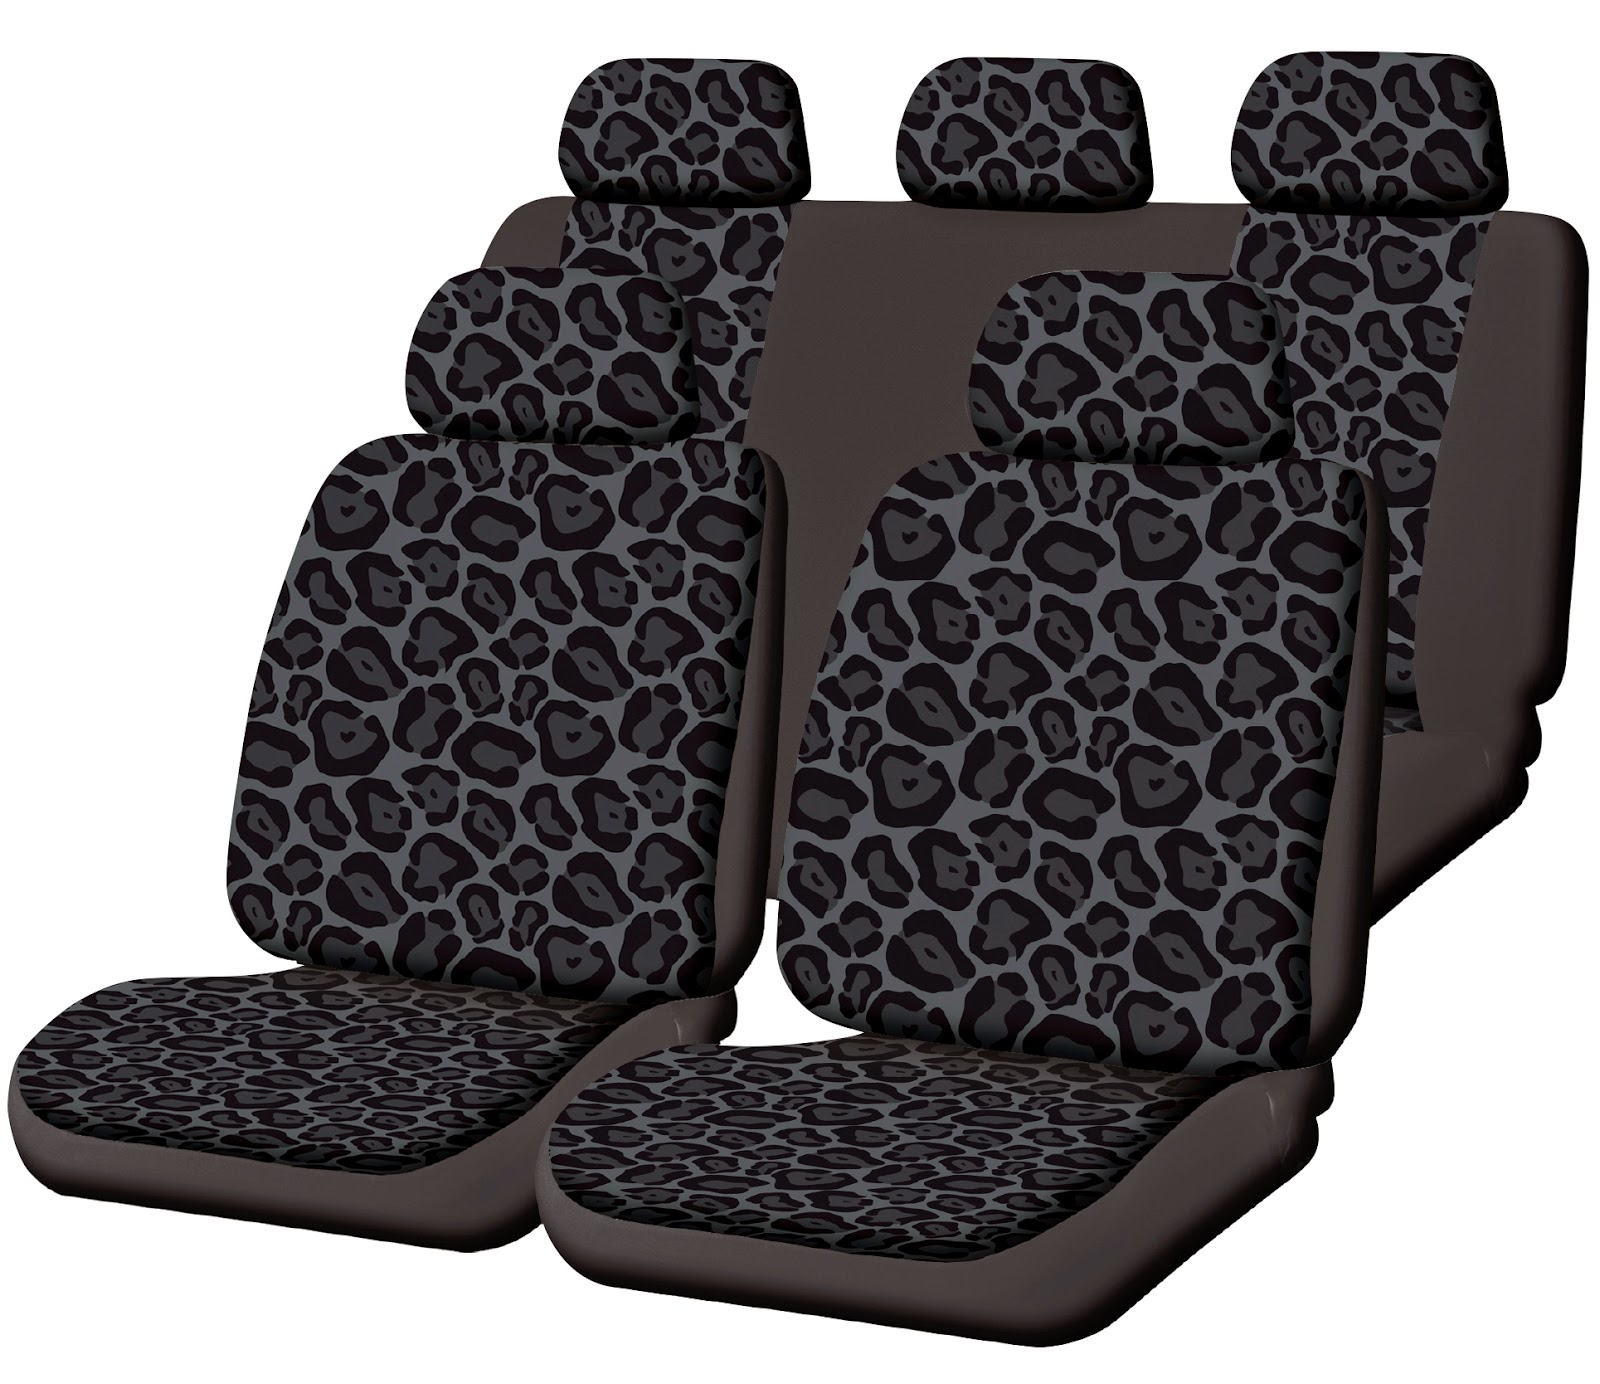 Chair Seat Covers At Walmart Sit And Play An Intro To